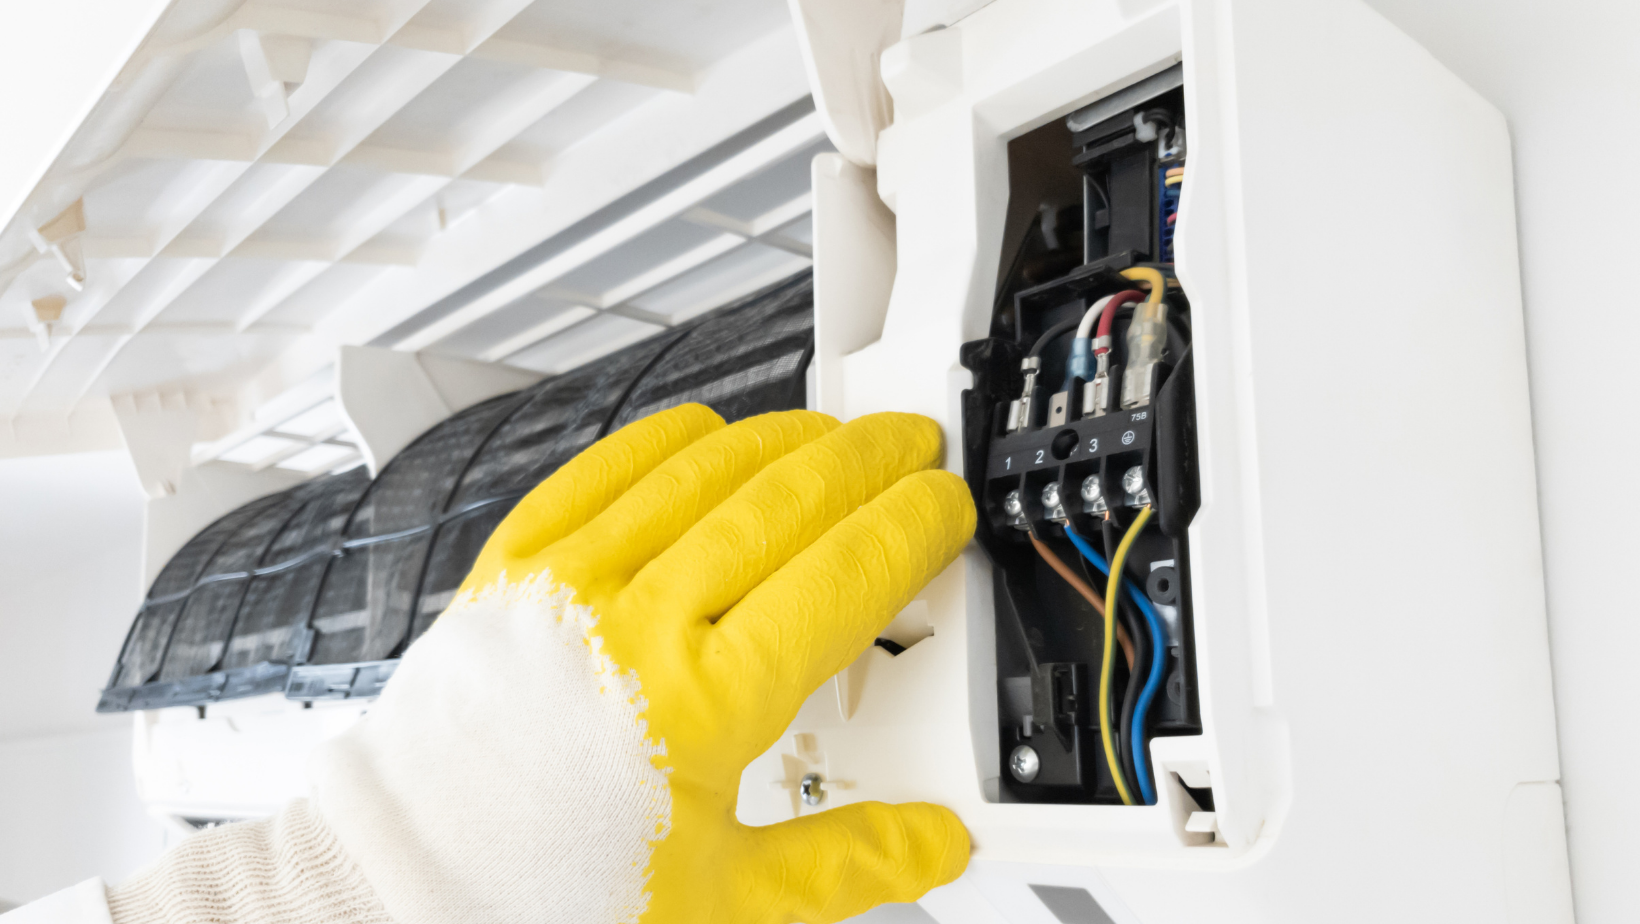 Aircondition service and maintenance, fixing AC unit and cleaning